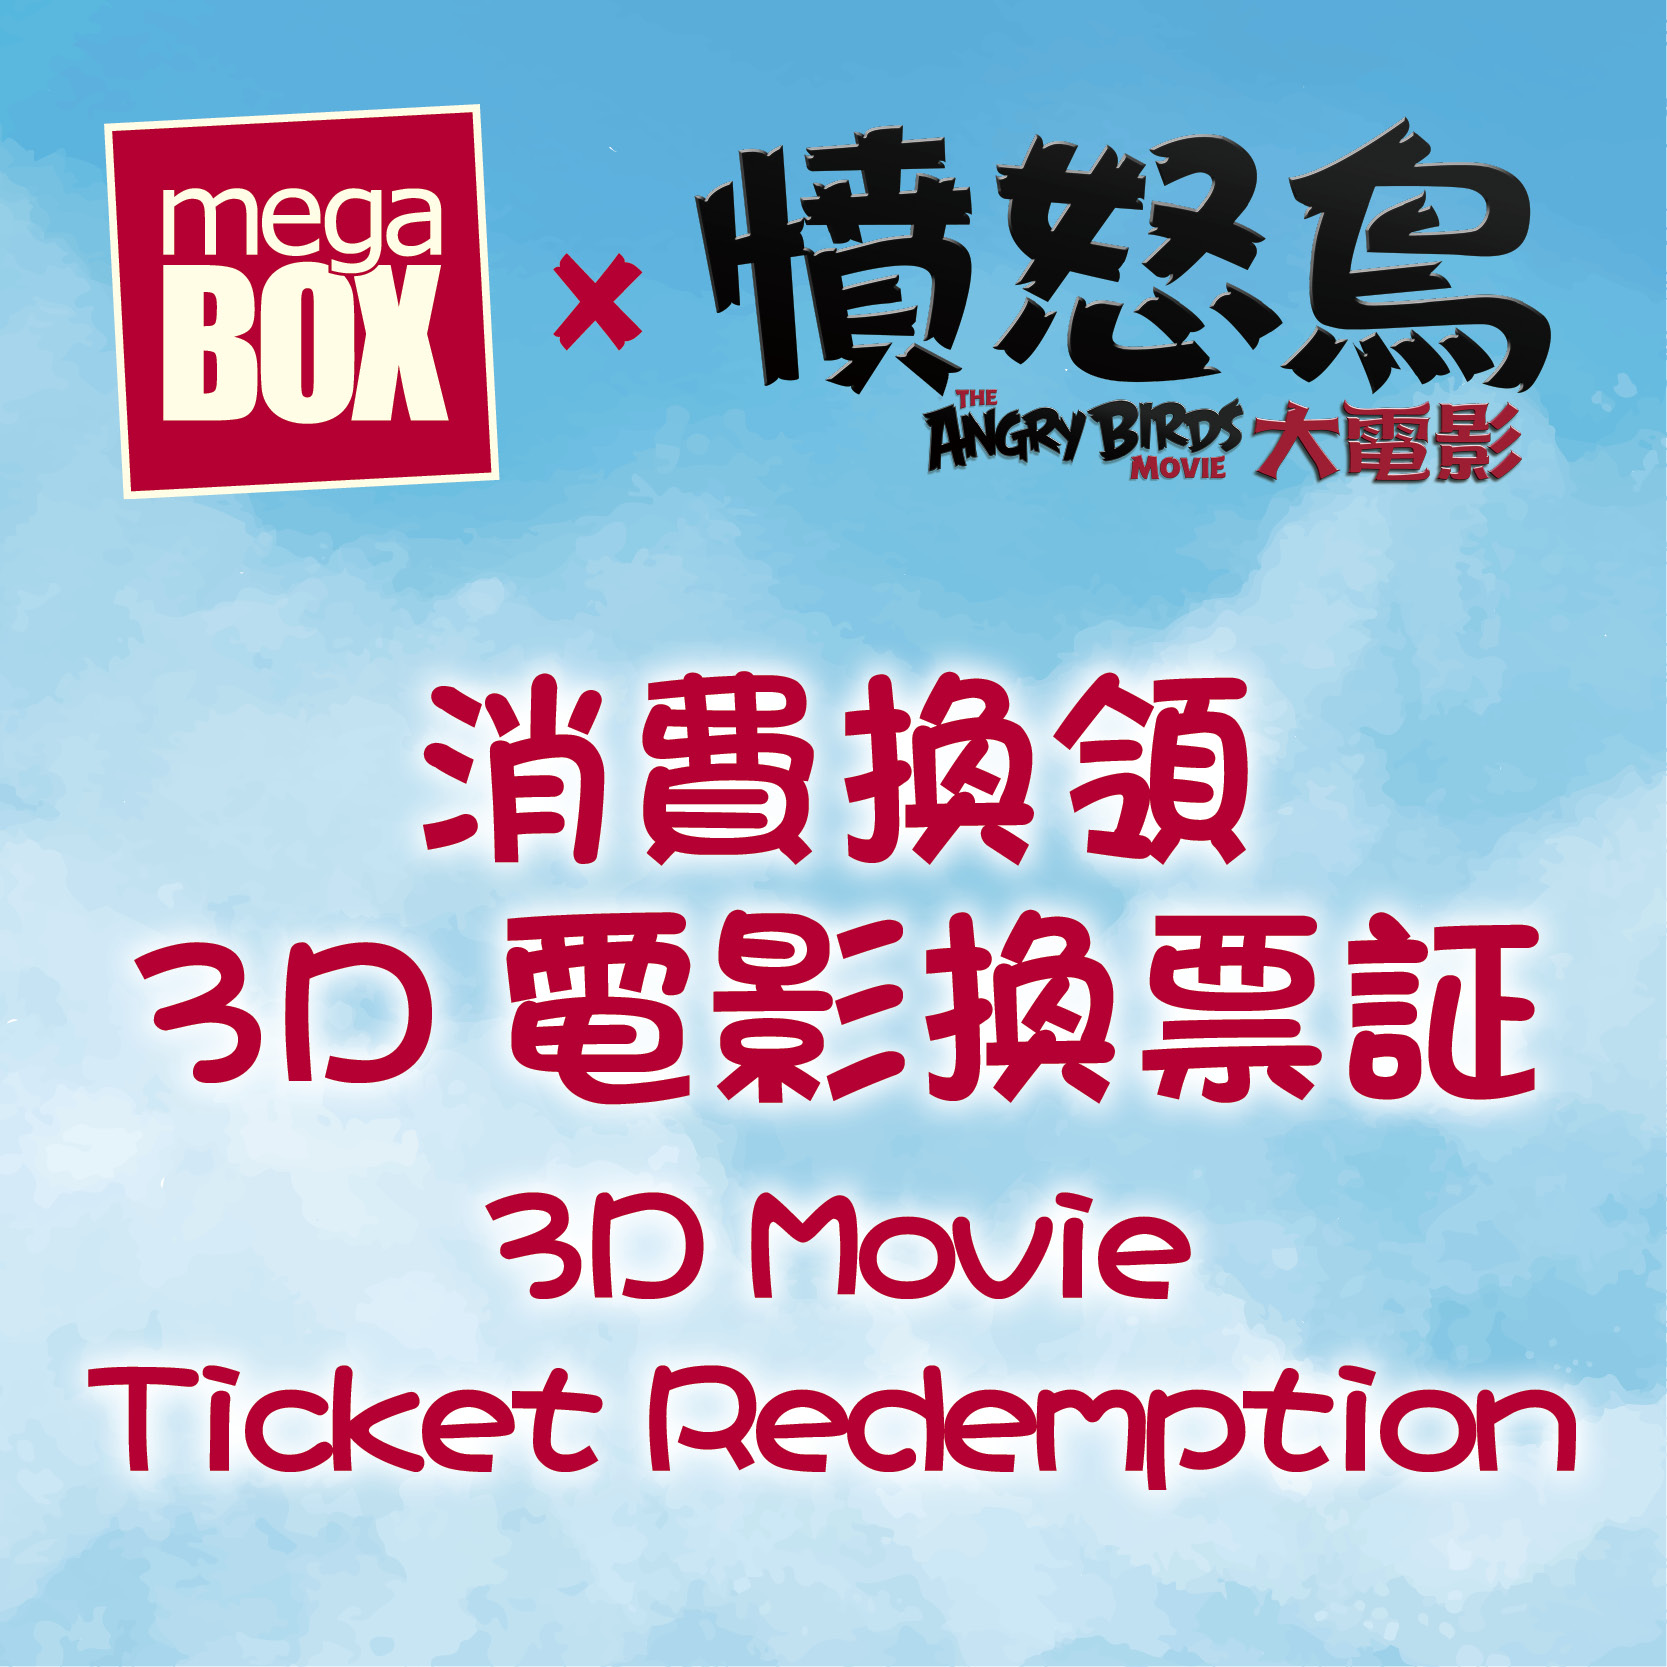 """THE ANGRY BIRDS MOVIE""3D MOVIE TICKET REDEMPTION"